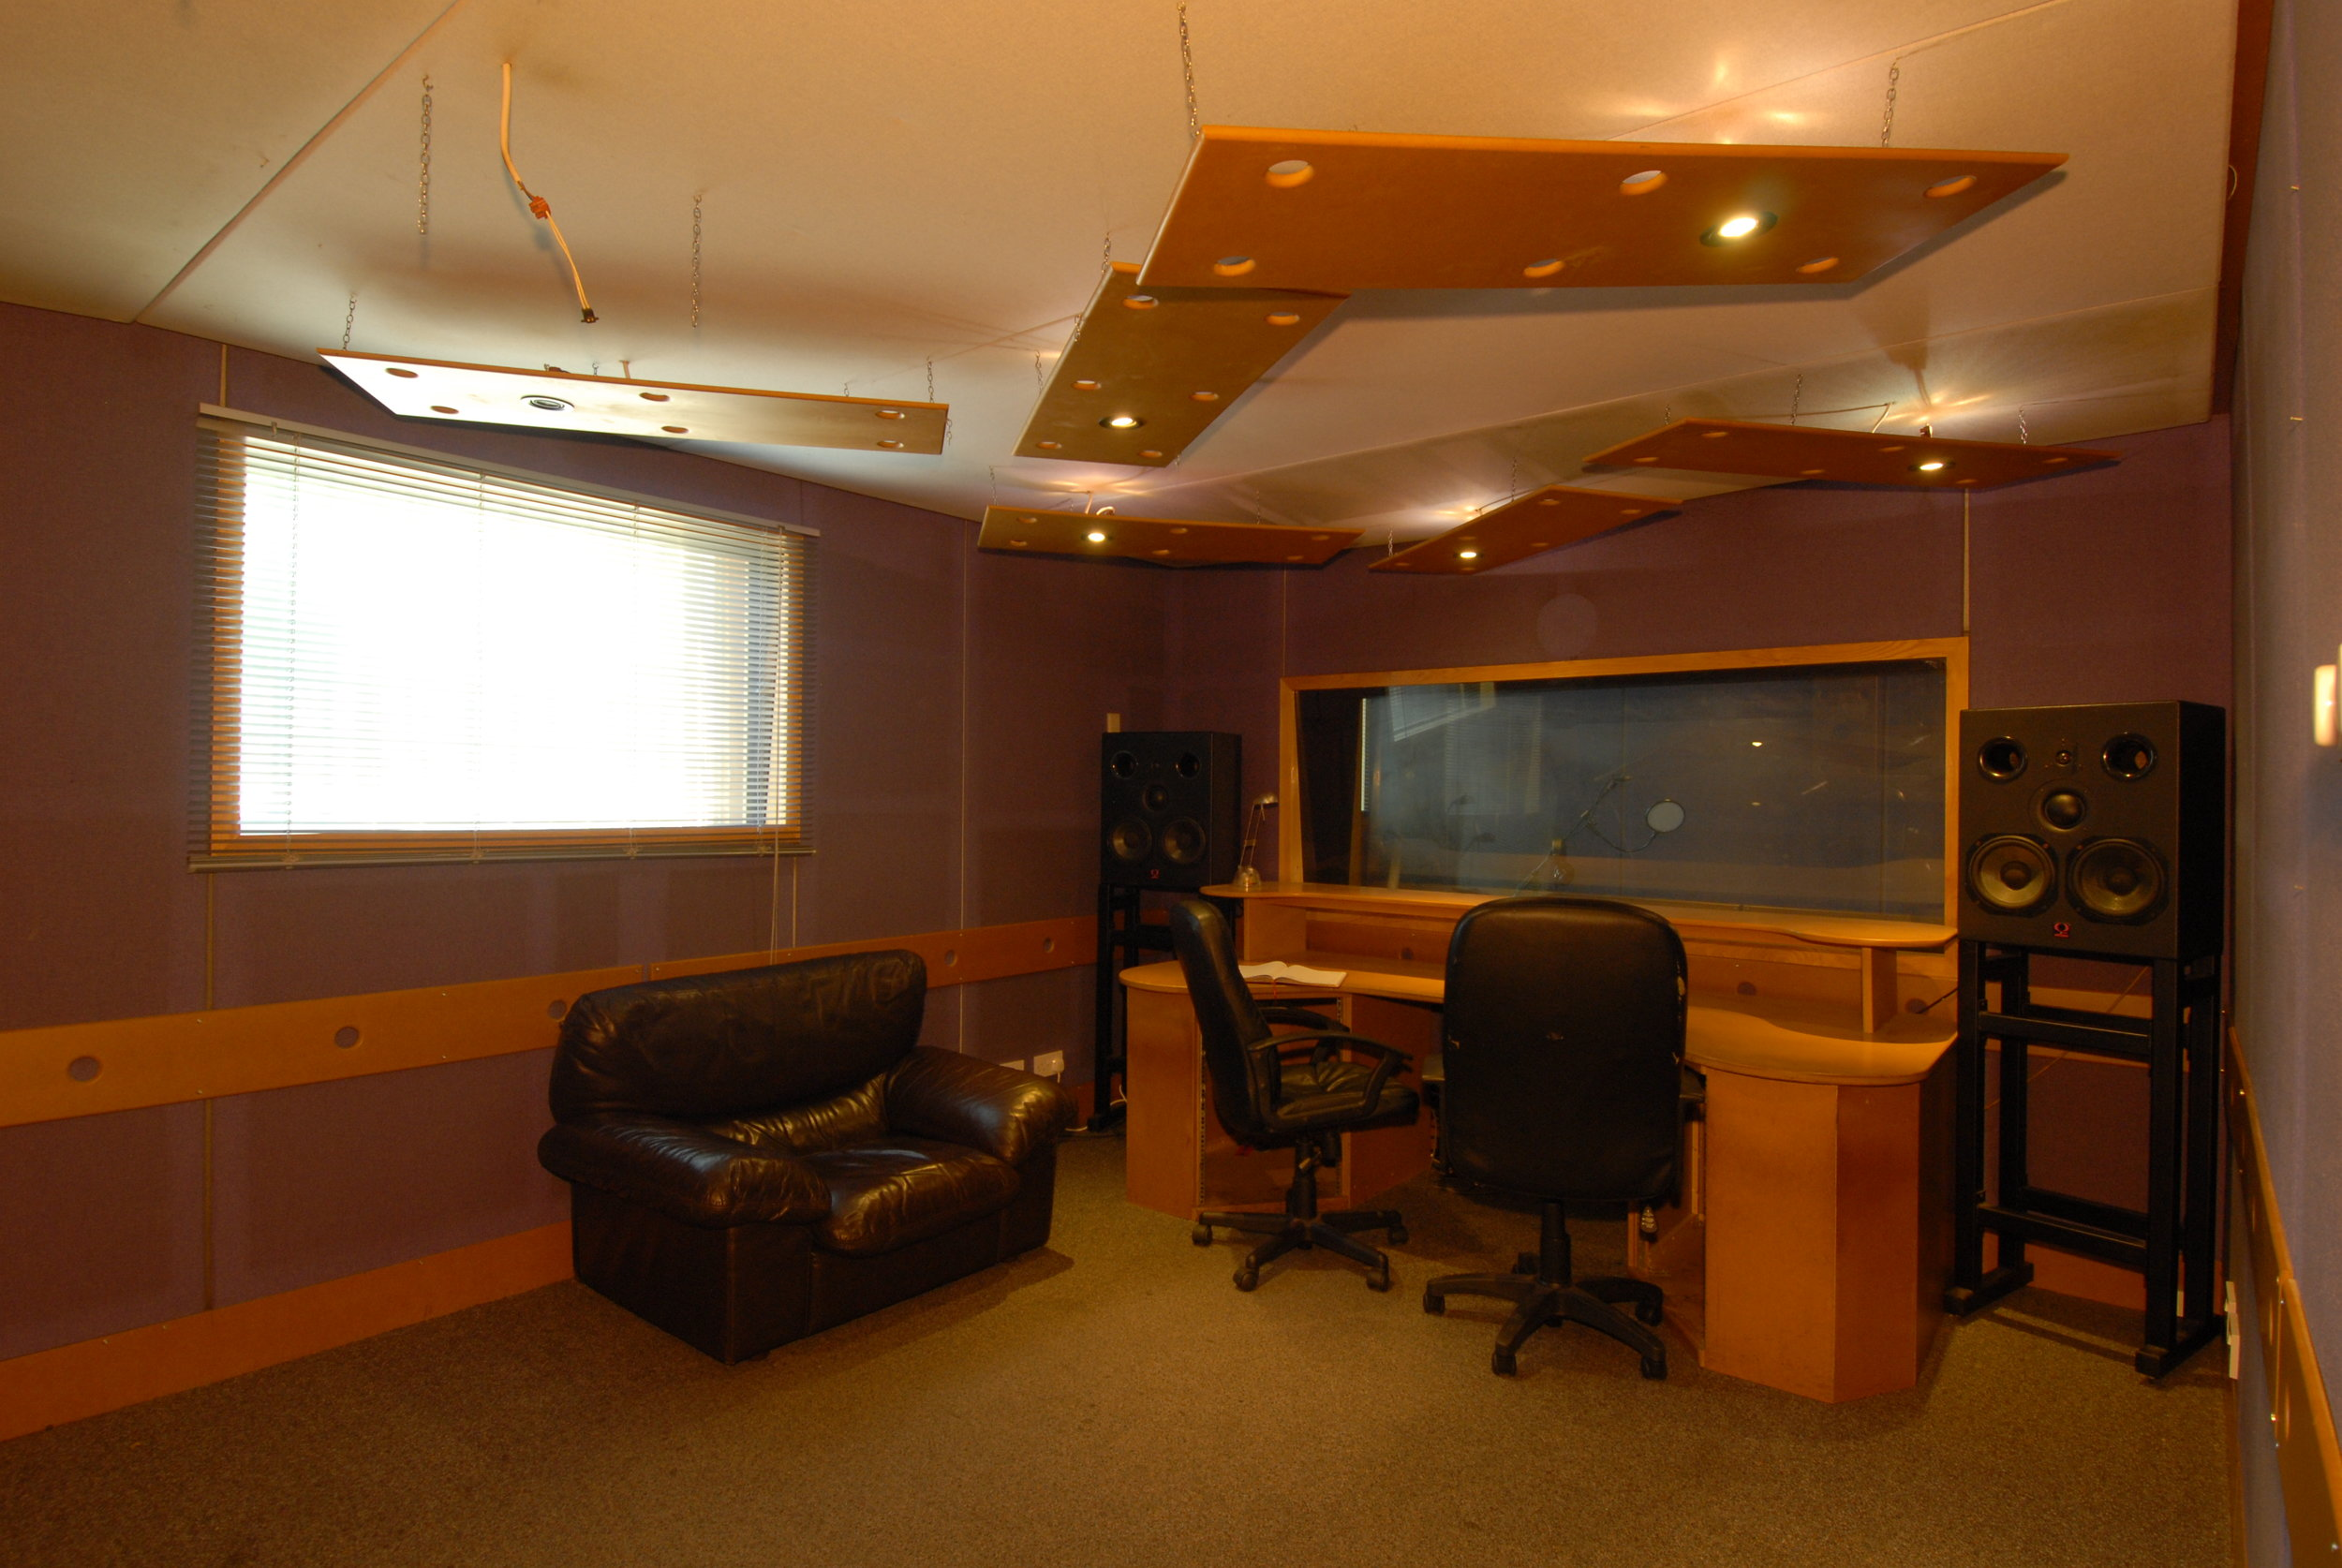 Studio 1 - Designed and built by KFA, production suite 1 is an ideal mixing, programming, recording and production space with natural daylight. It has a separate booth large enough for a drum kit. It is air conditioned (silent), sound proofed, tuned to 100hz, has quadruple glazing and is independently alarmed.Measurements: 3.6m wide by 4.8m long. Vocal booth: 3.6m wide by 1.8m long.